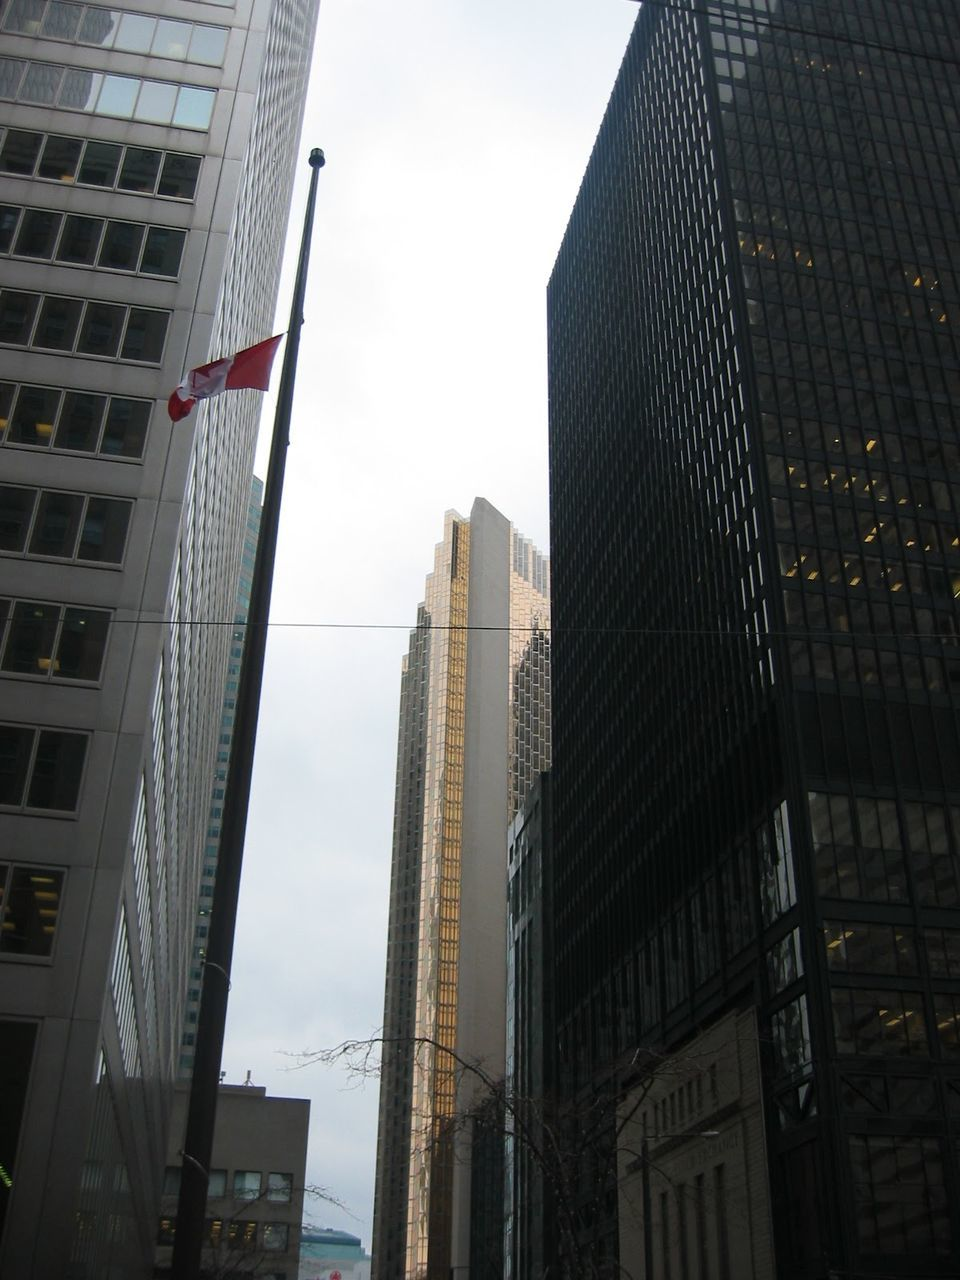 architecture, modern, skyscraper, city, building, building exterior, built structure, no people, outdoors, cityscape, sky, day